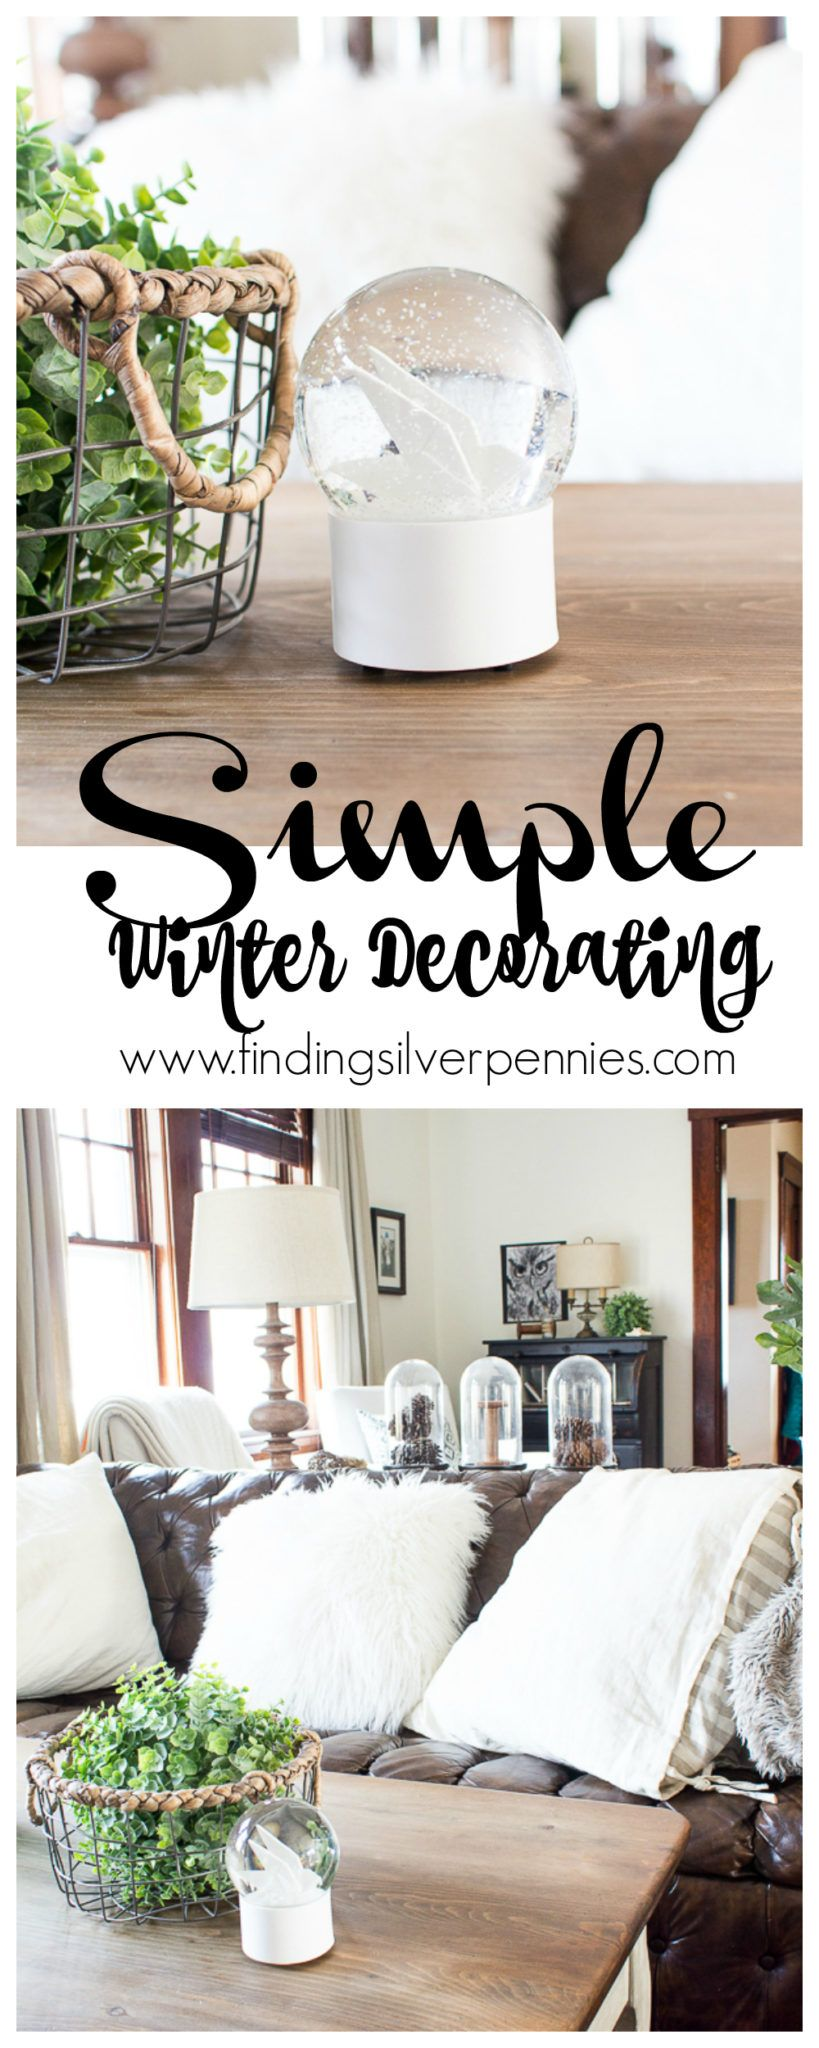 Simple Winter Decorating & a Change | Budgeting, Funky junk and ...